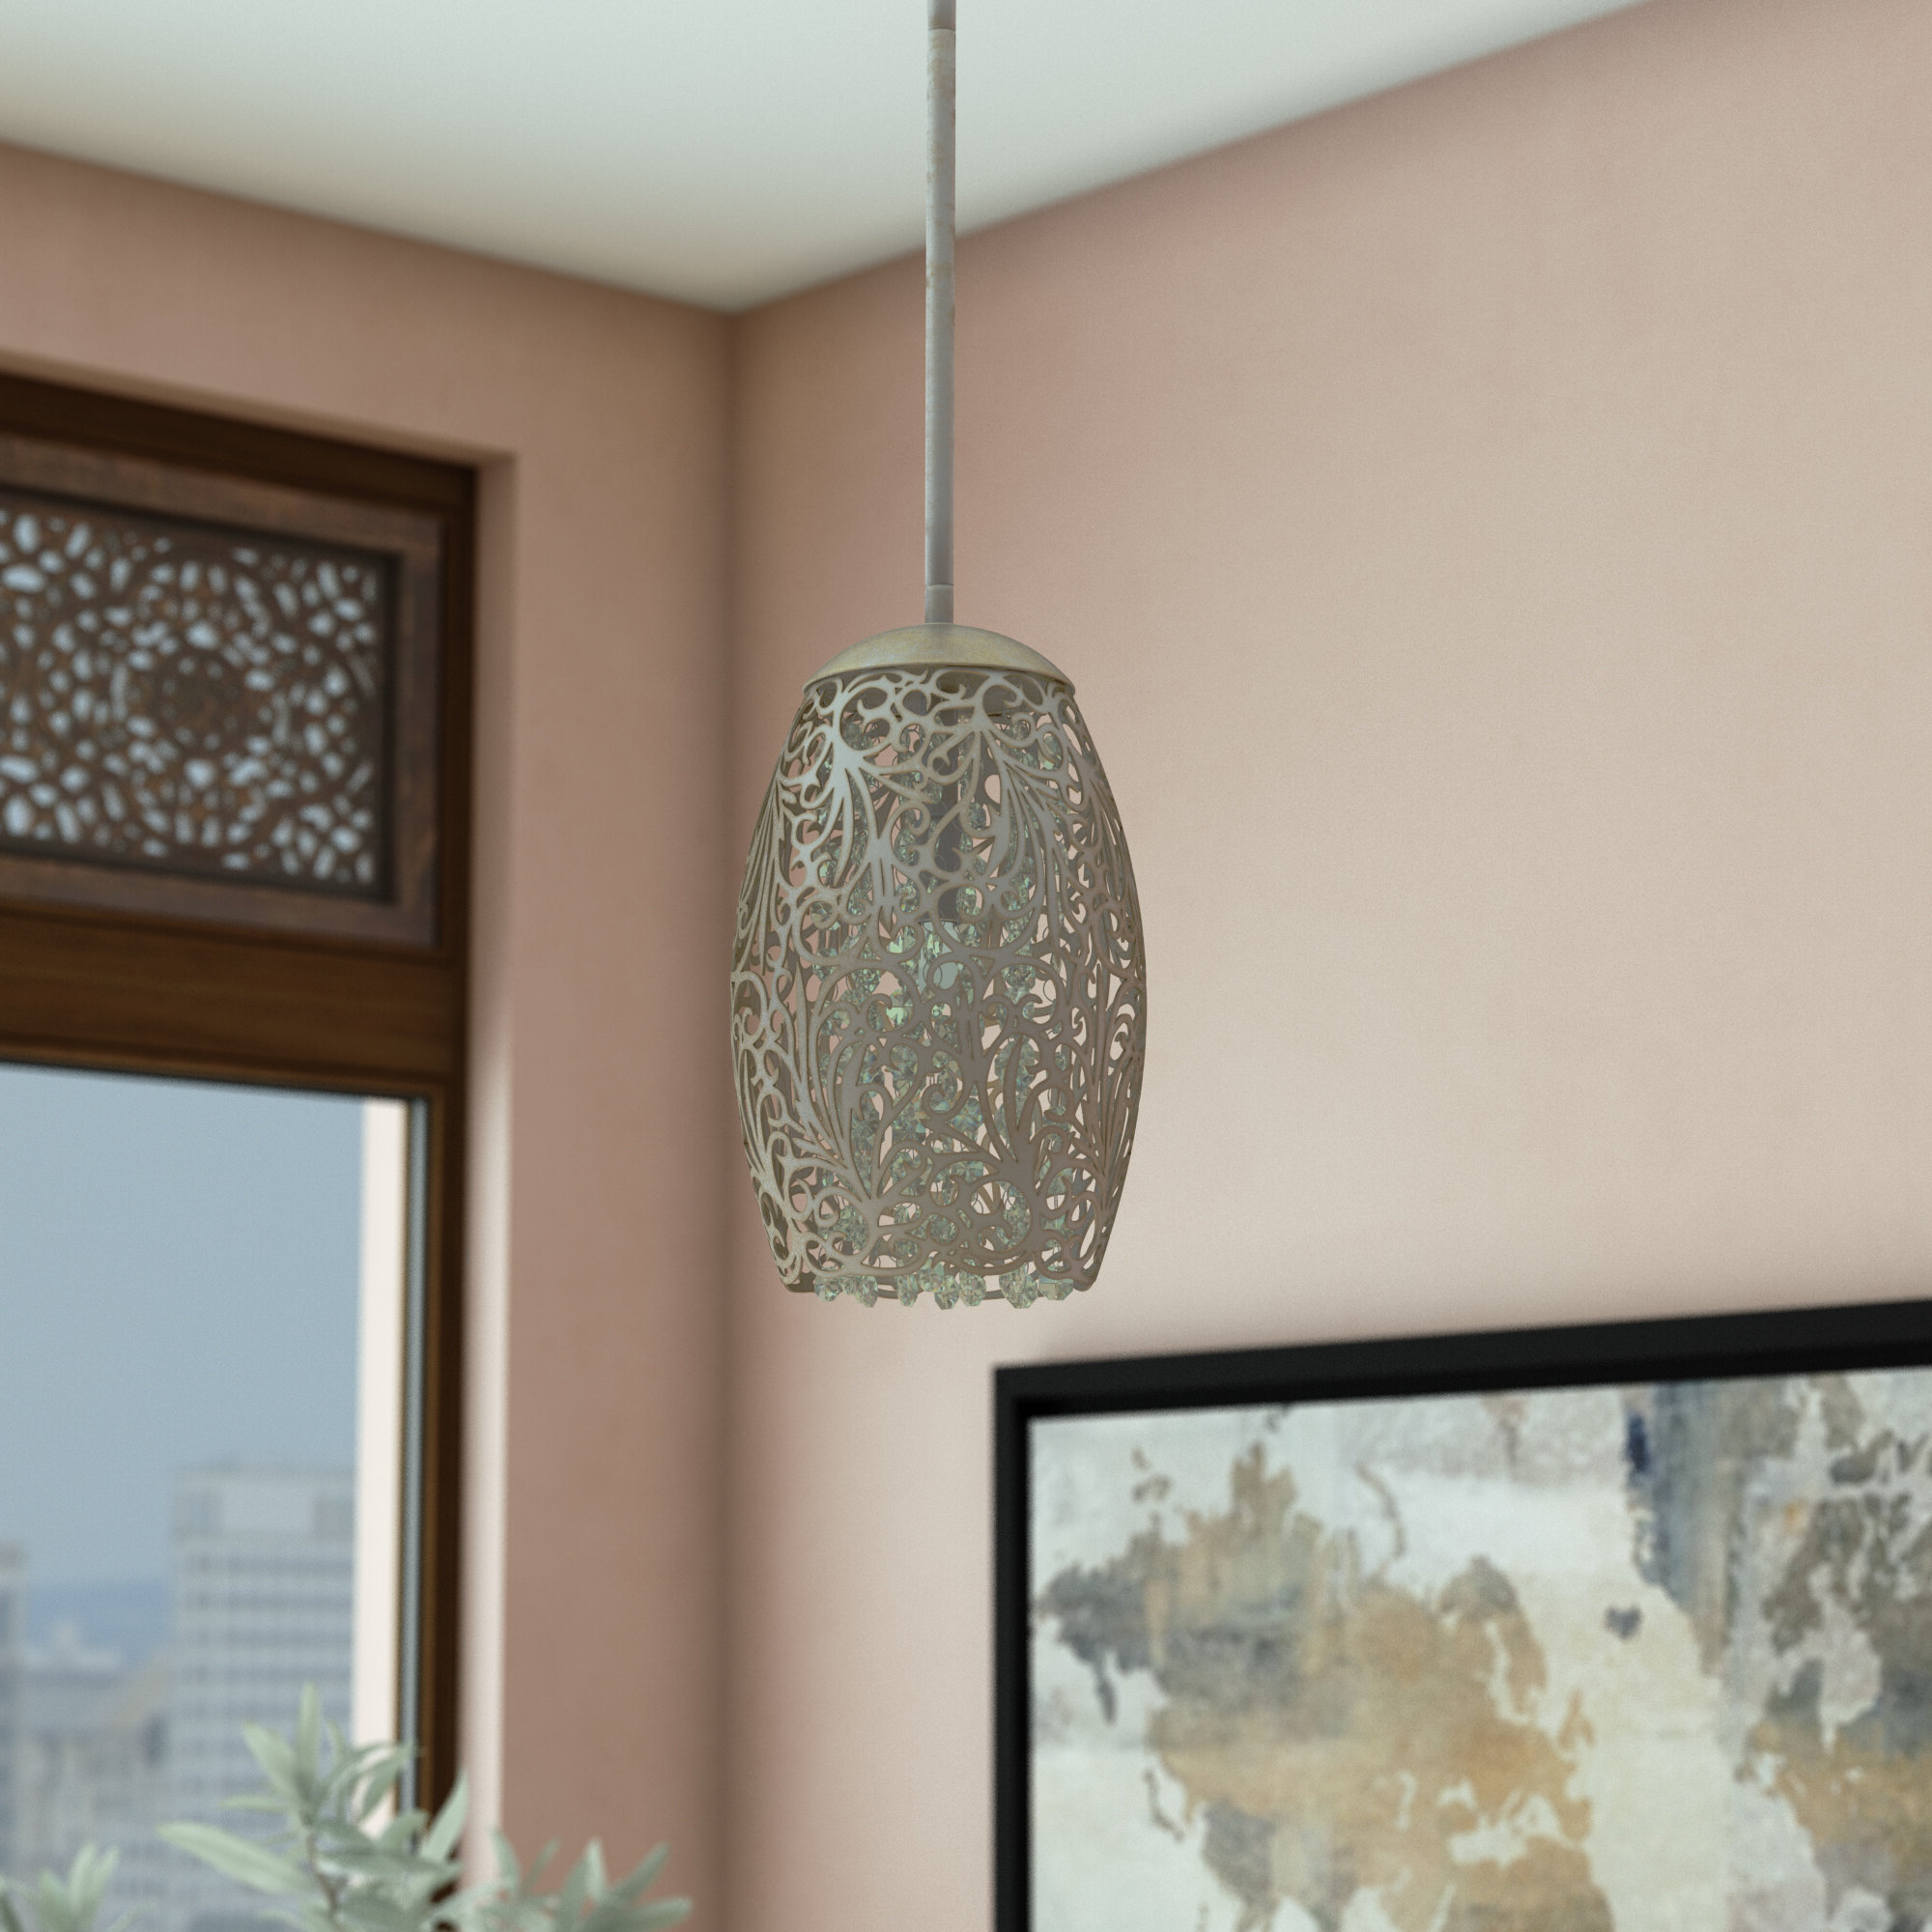 Wayfair Regarding Willems 1 Light Single Drum Pendants (Gallery 5 of 20)